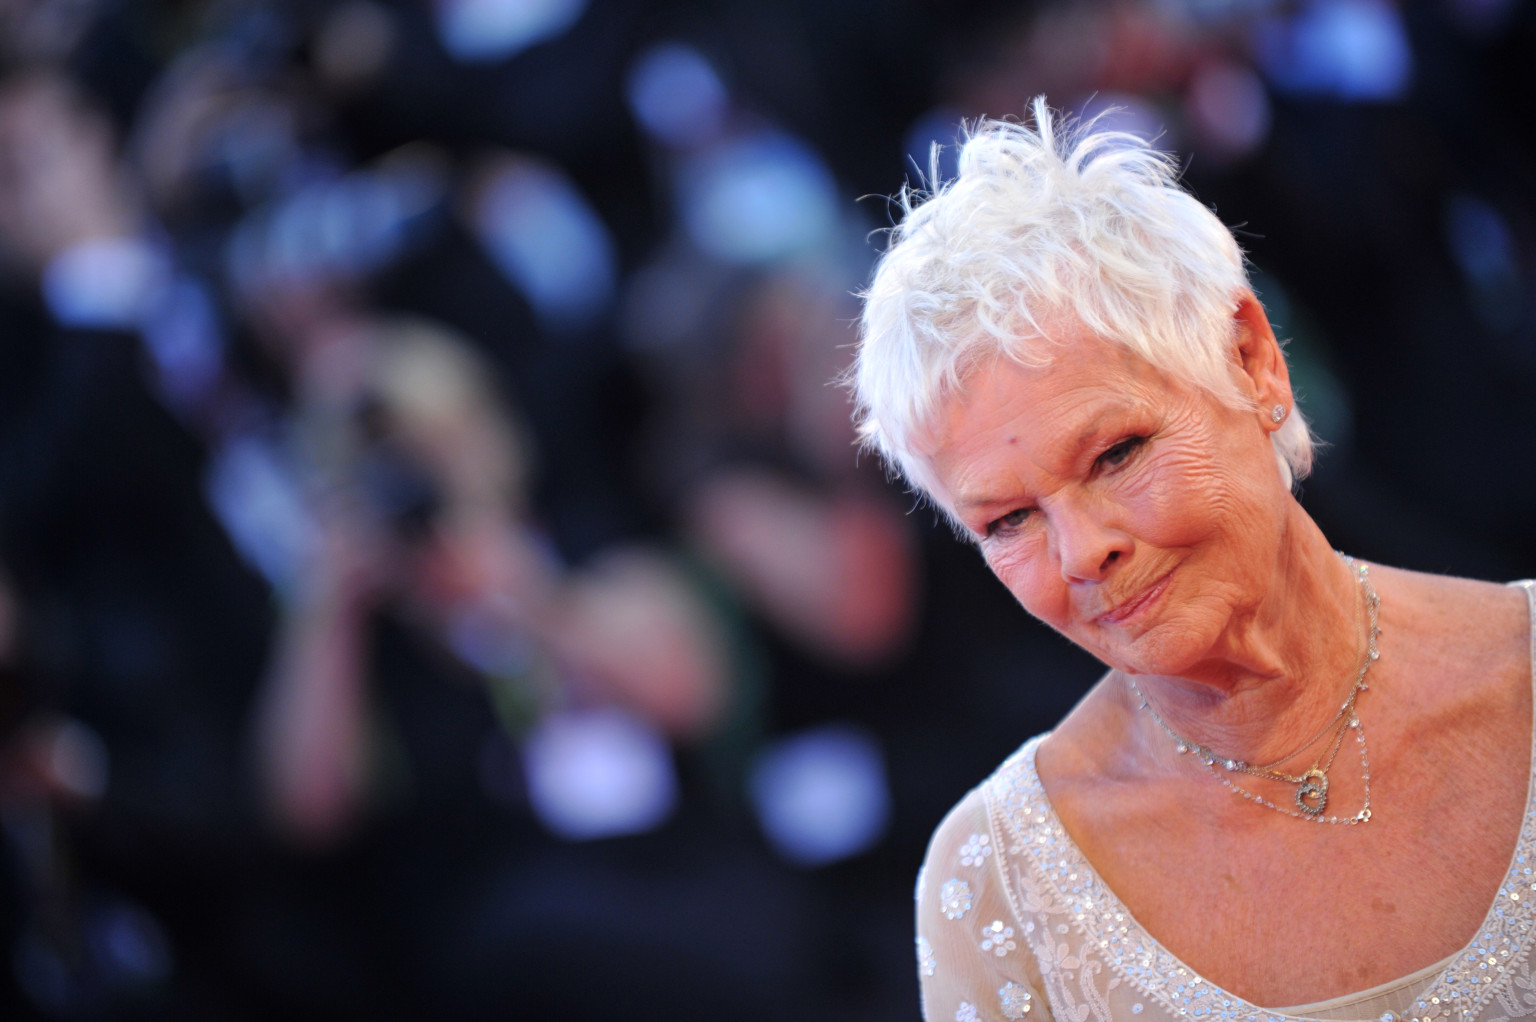 judi dench hairstyle Book Covers